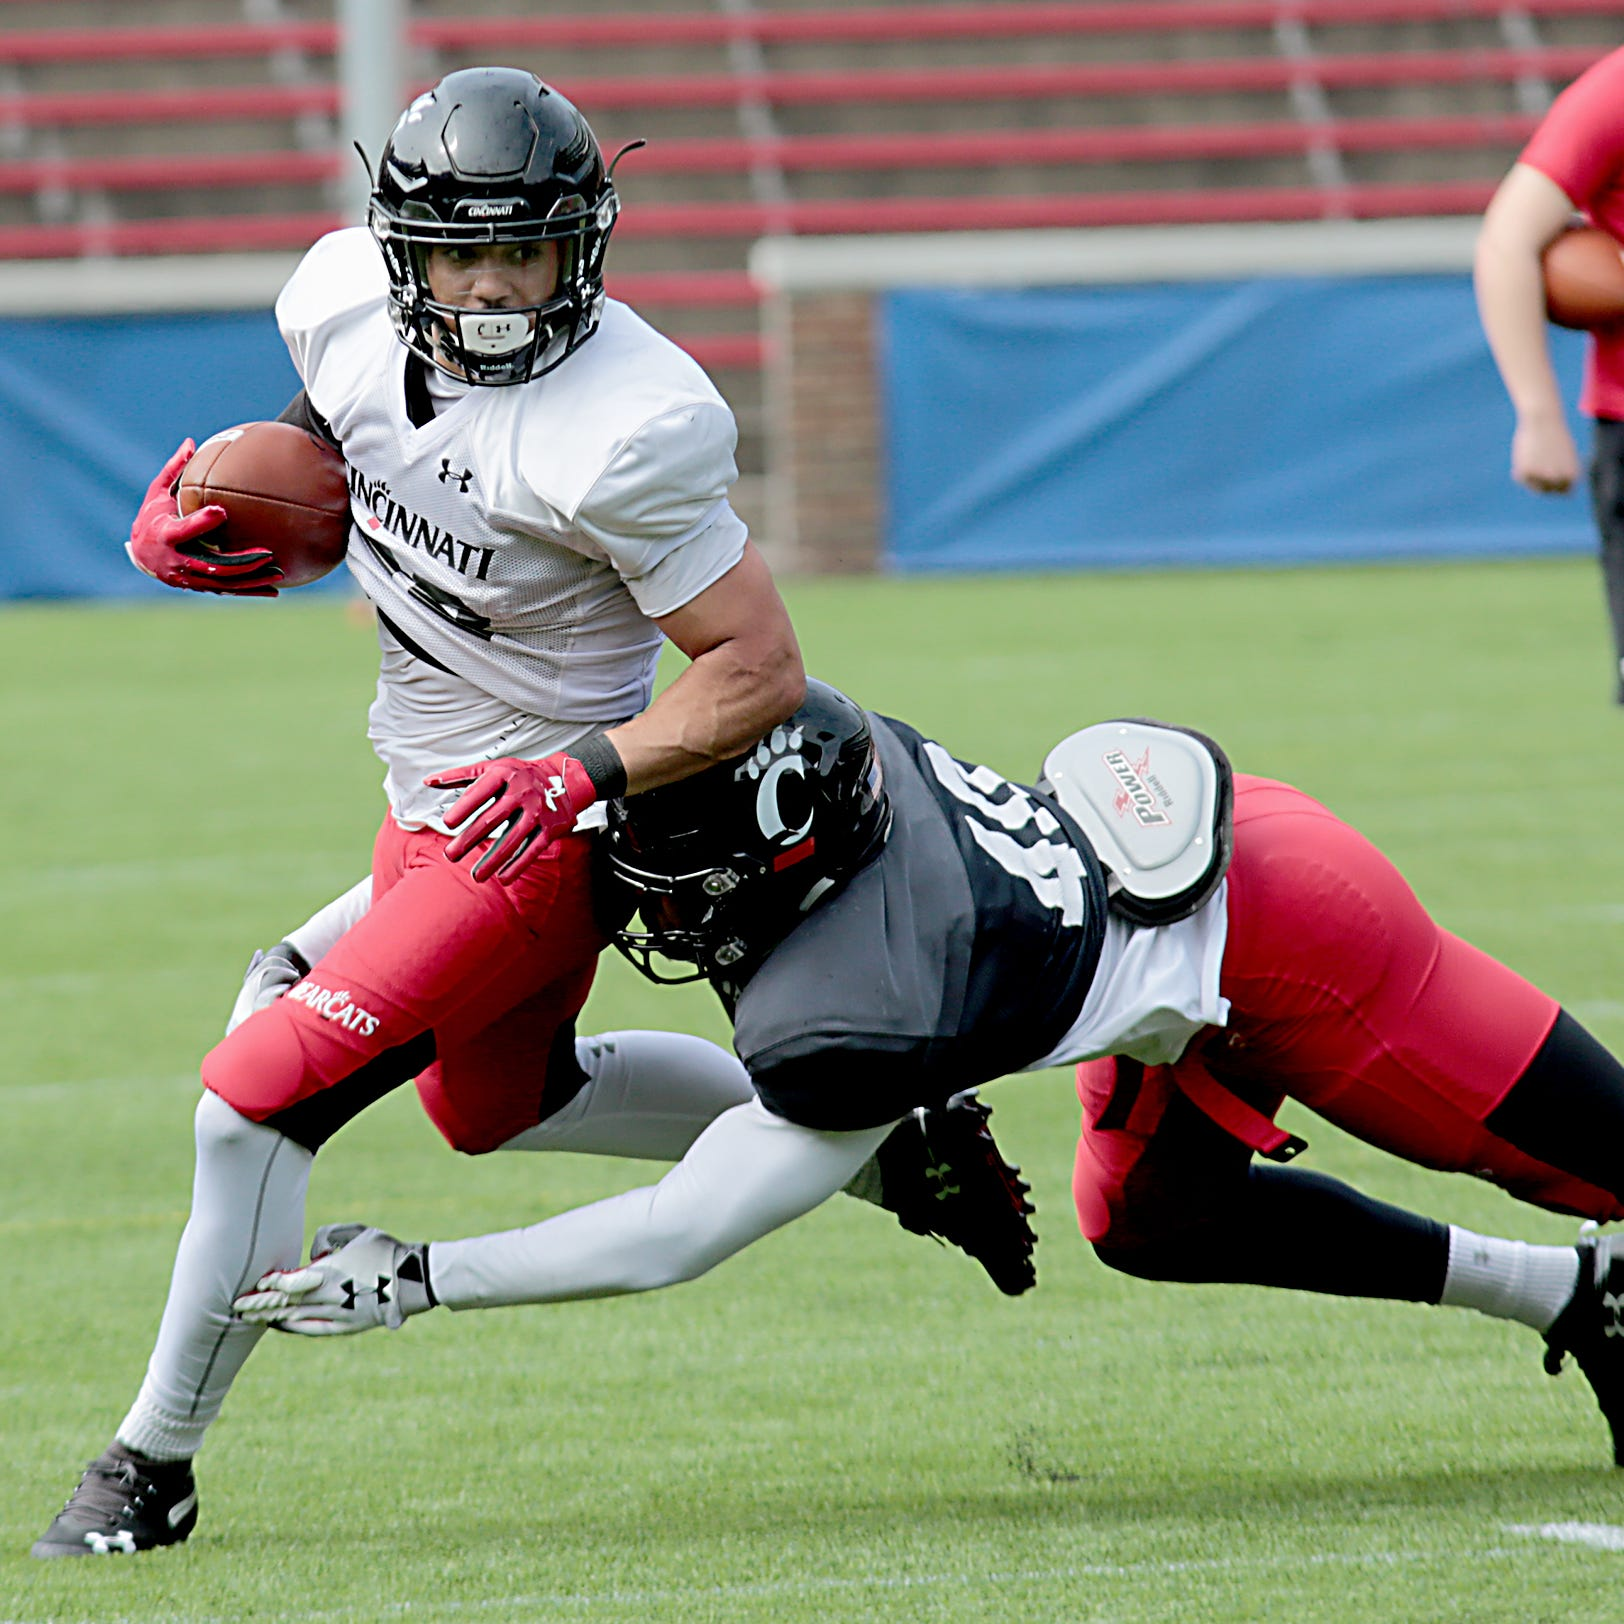 Cincinnati Bearcats football: End of spring turns out special